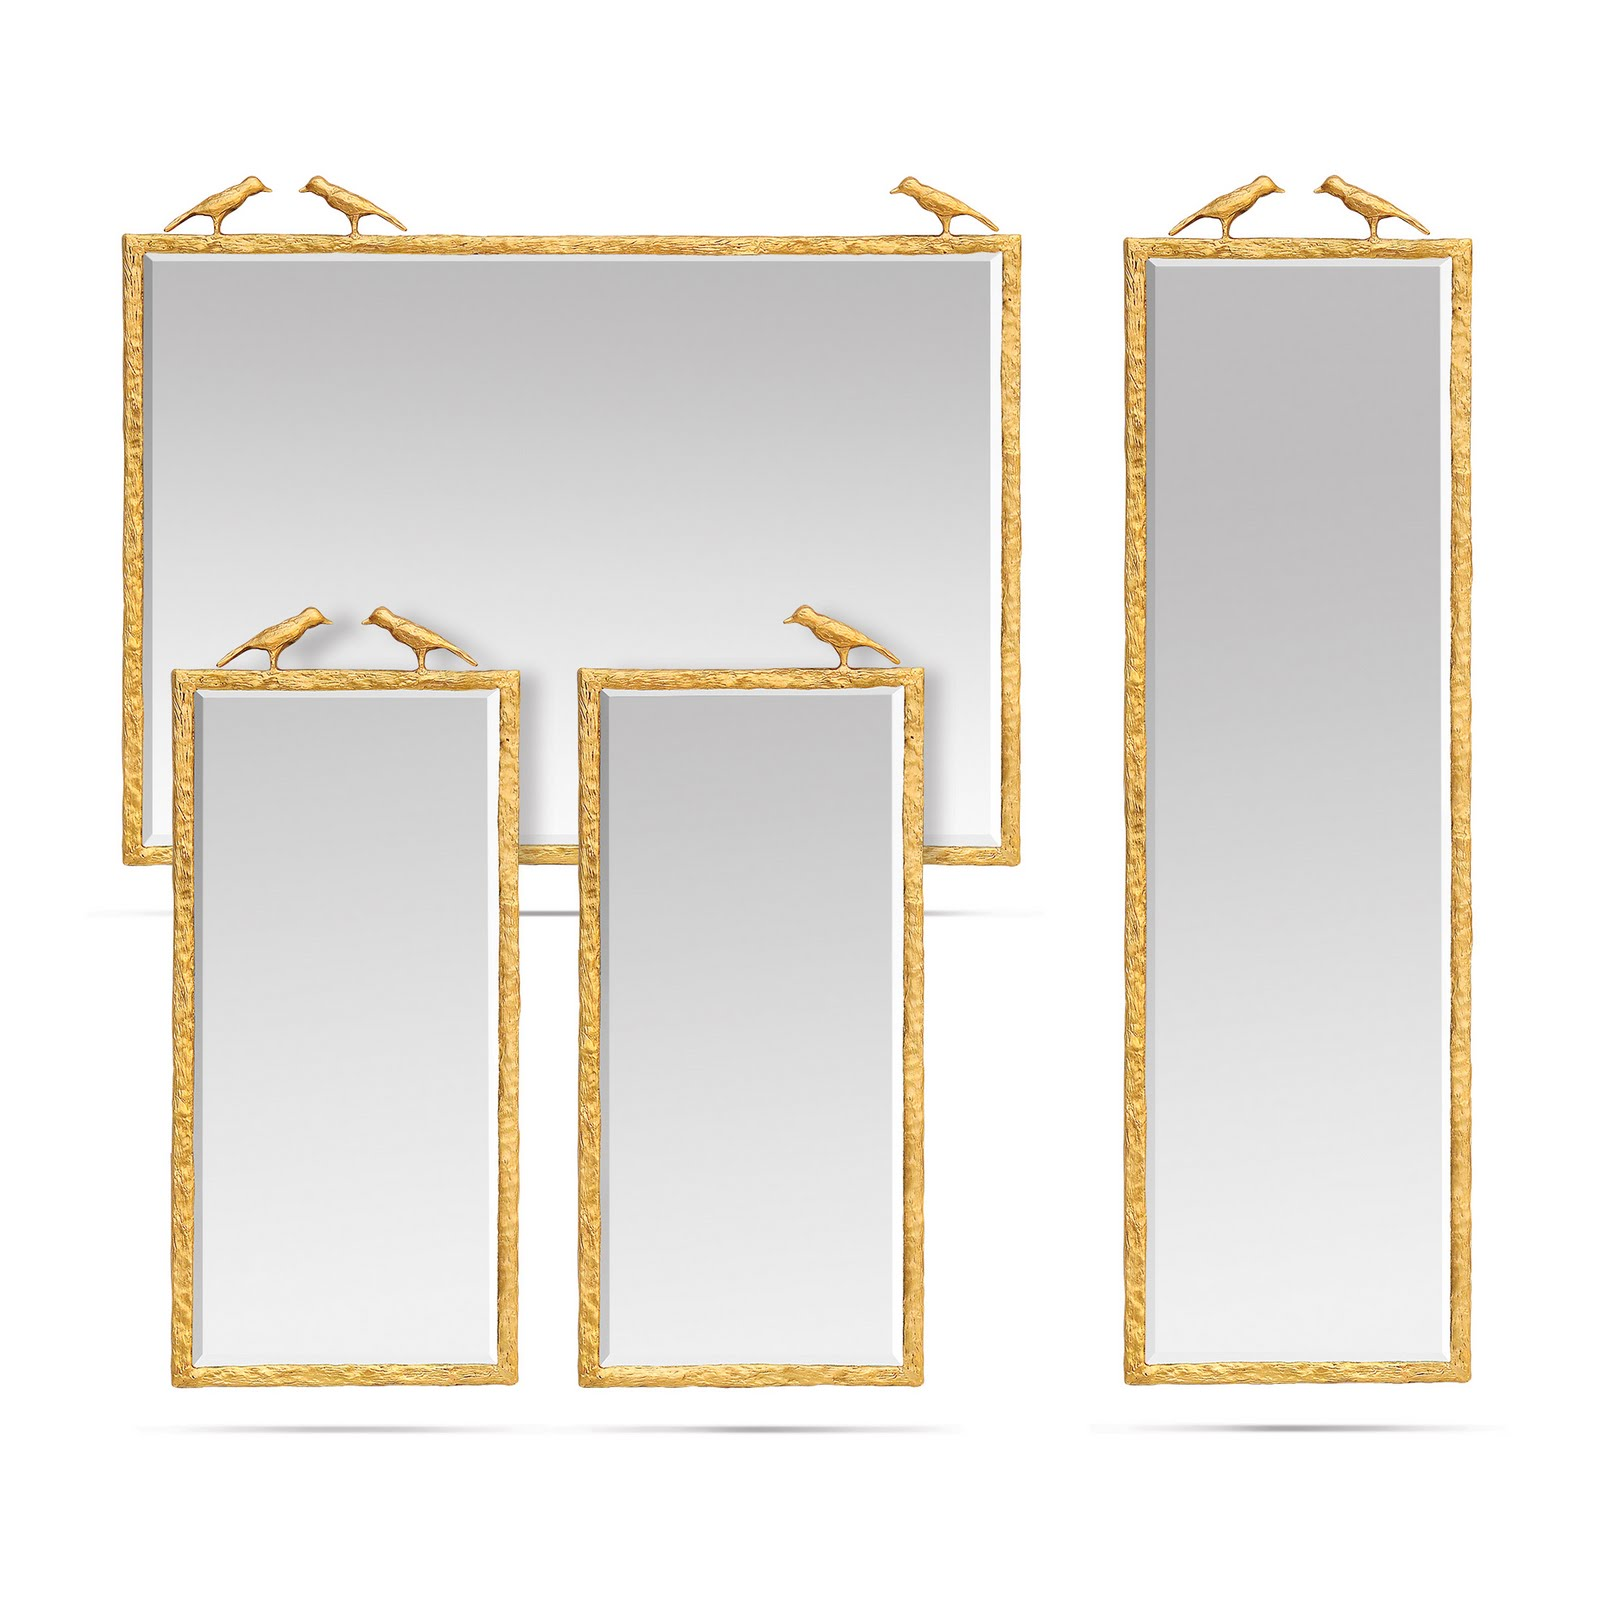 Beadboard upcountry mirror mirror made good for you for Different sized mirrors